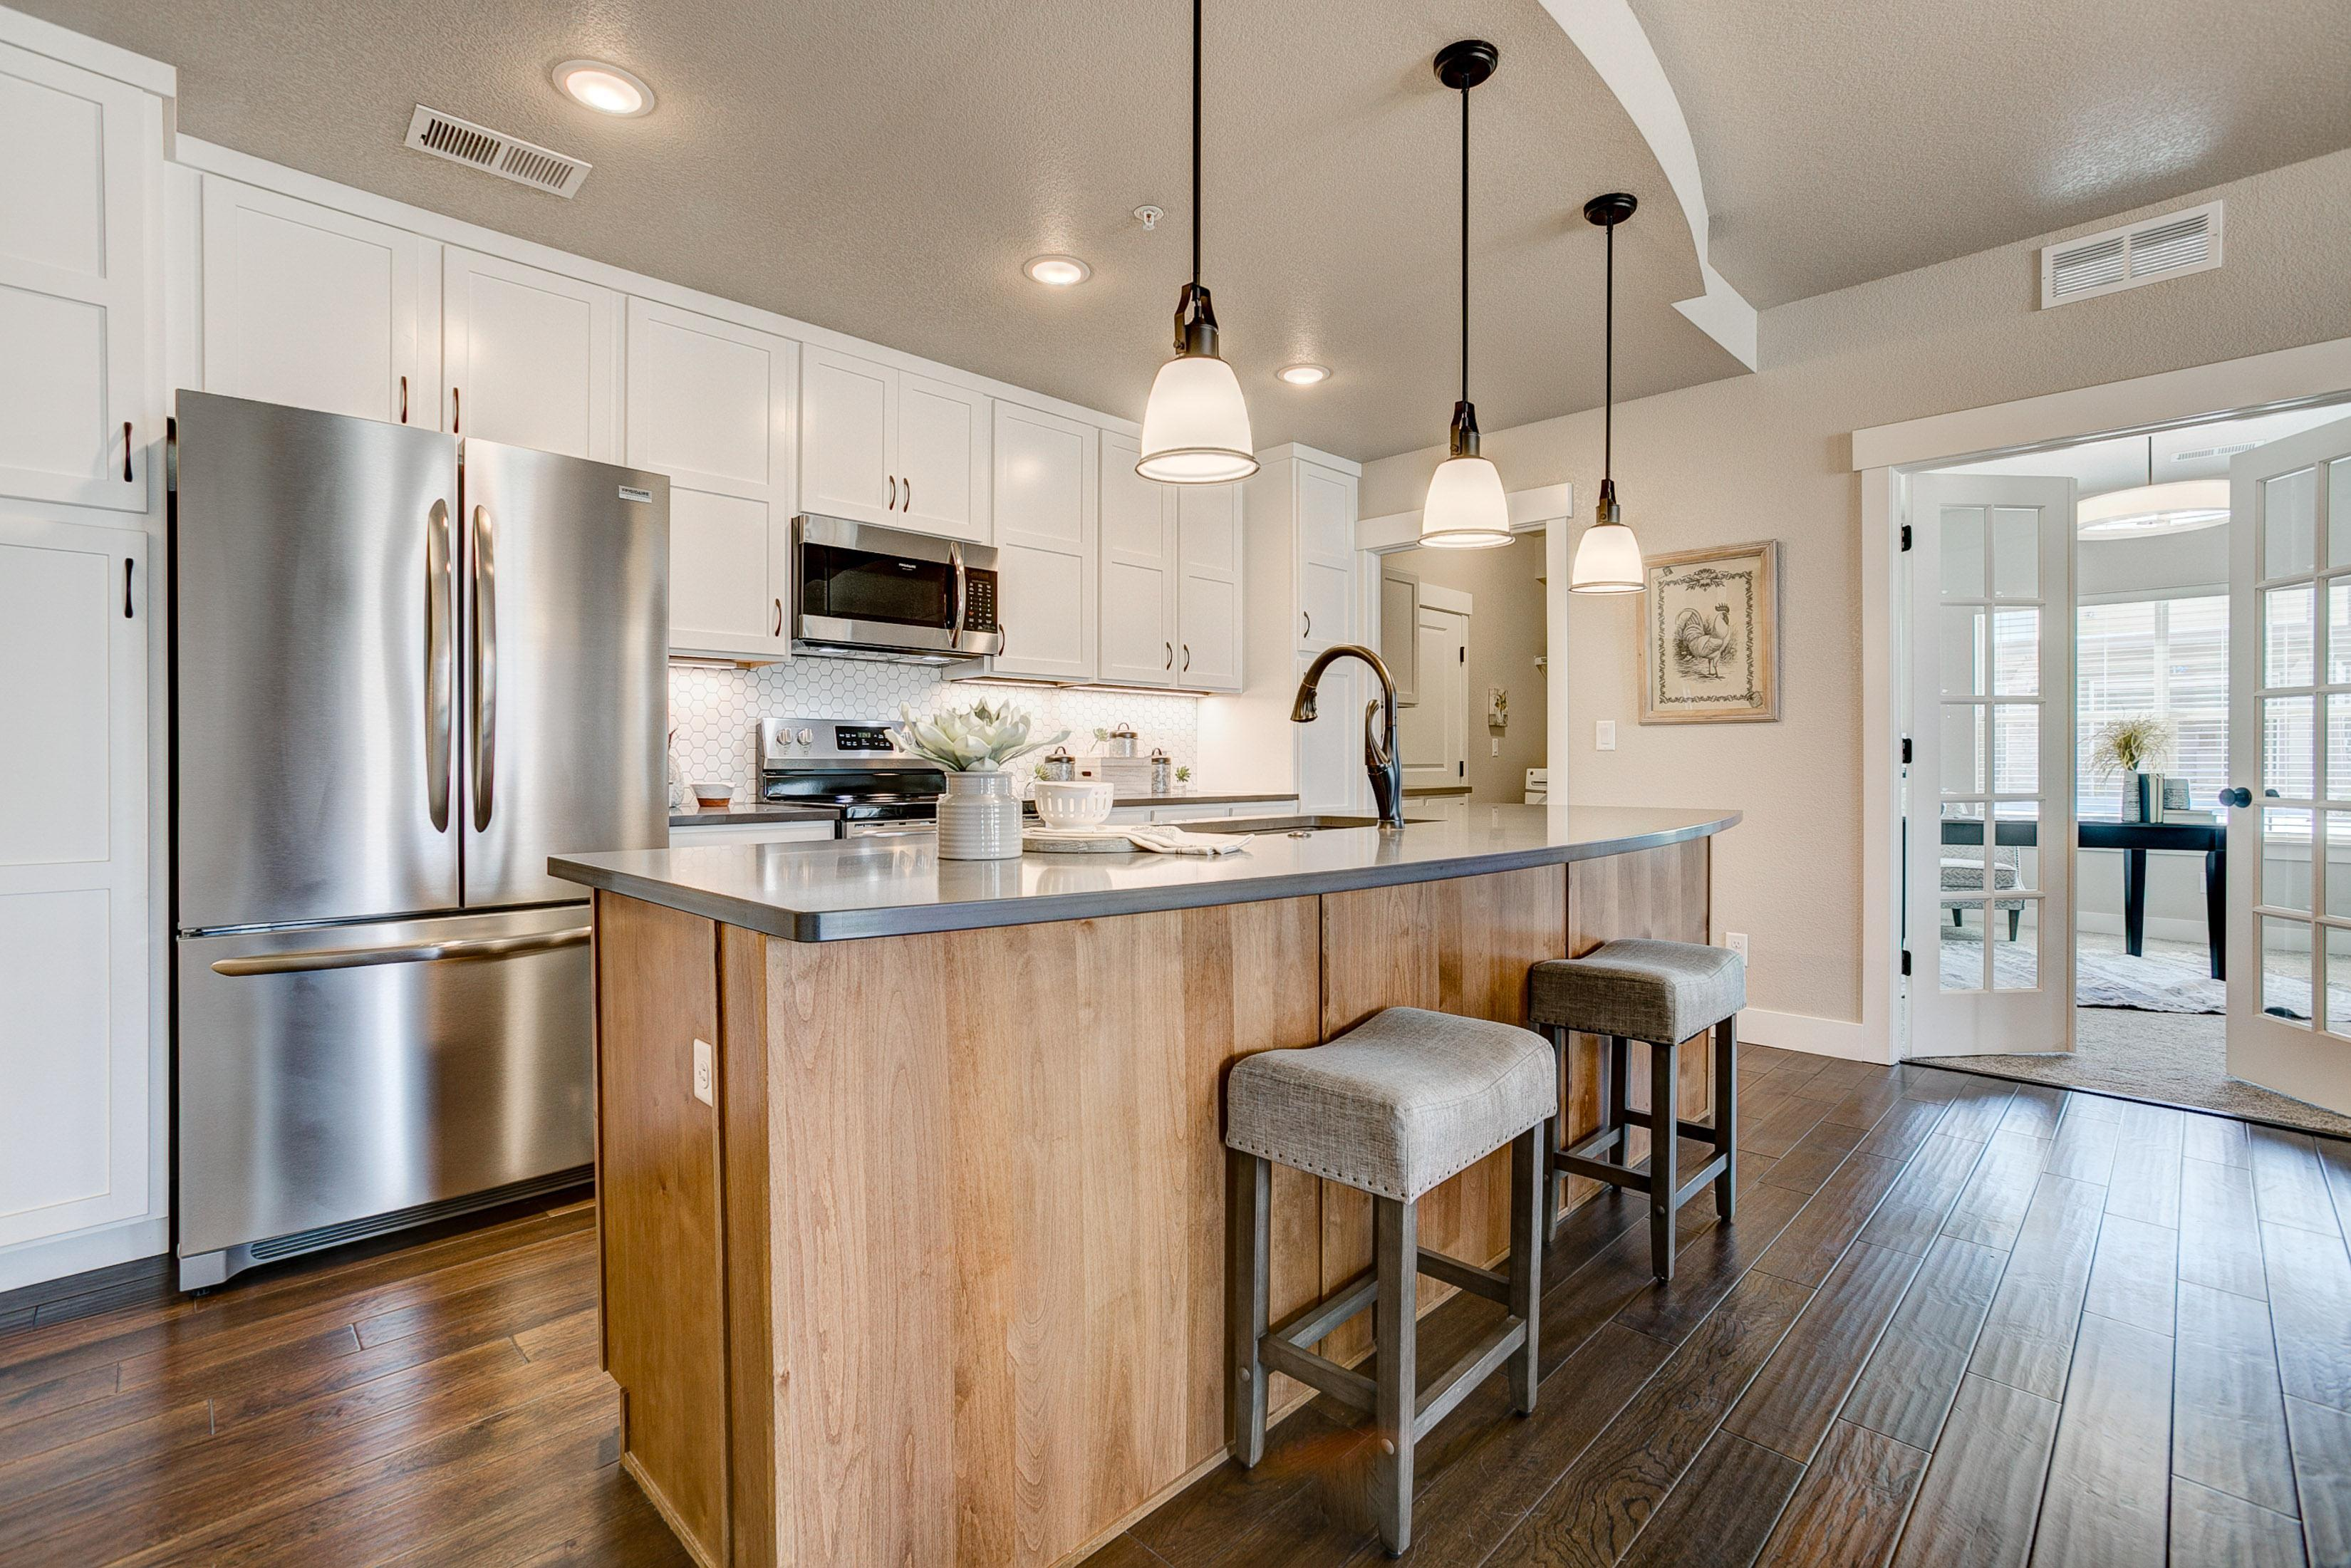 Kitchen featured in the Cambridge By Landmark Homes  in Fort Collins-Loveland, CO